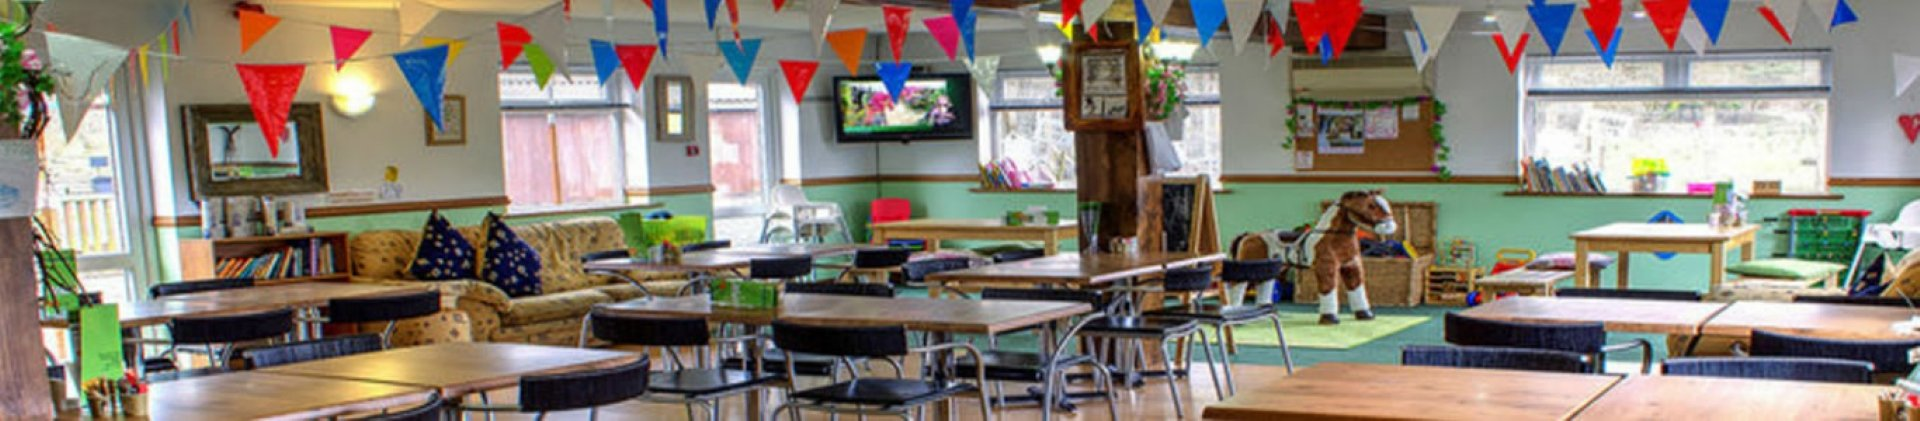 The Green Frog Cafe at Moffat